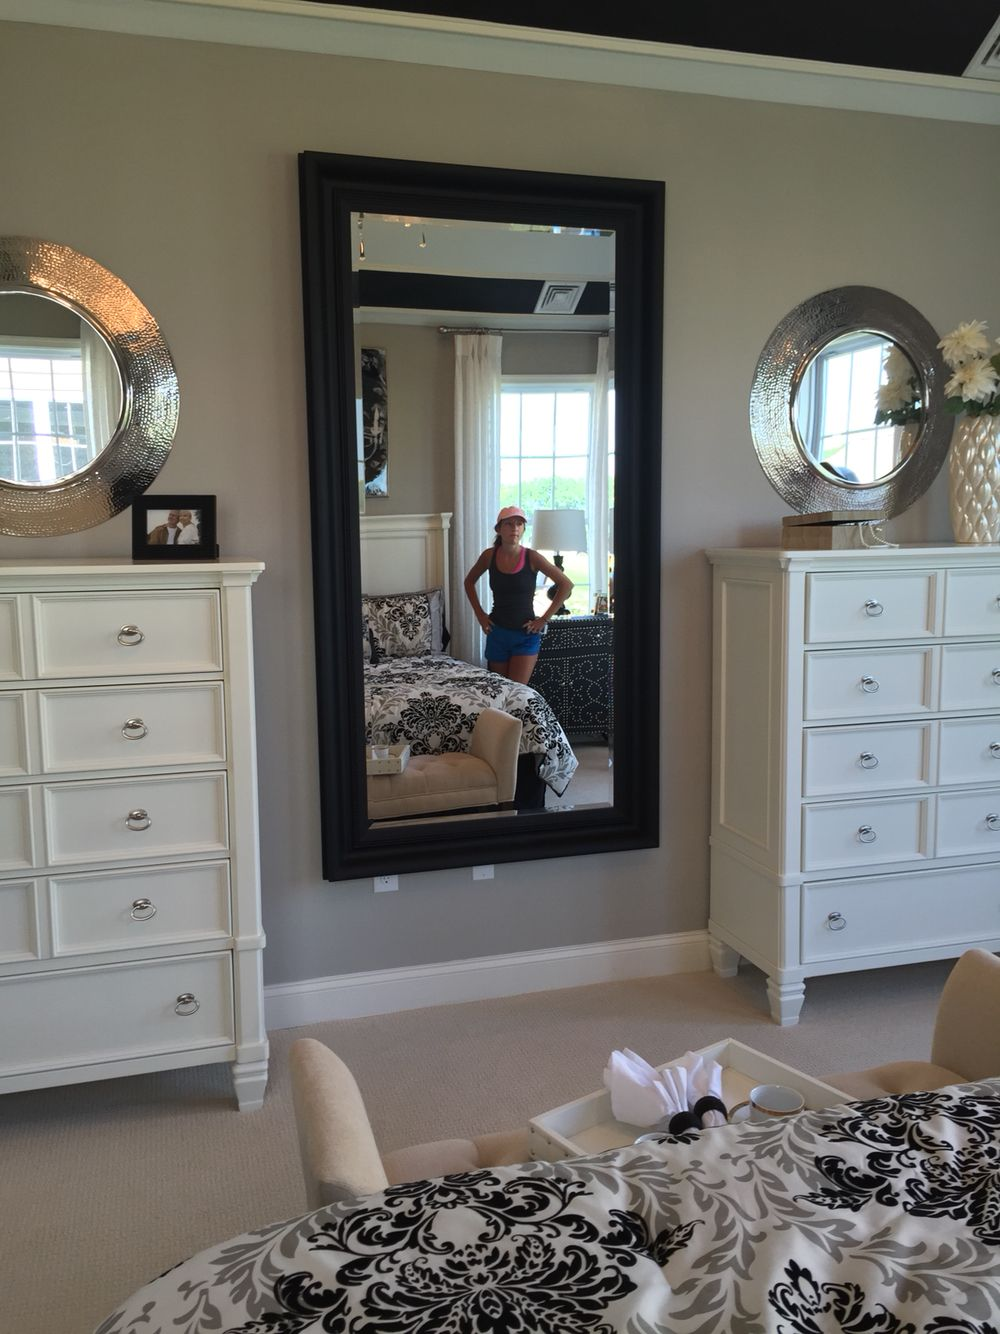 Like the mirror between identical dressers. Pinterest       unplannedmix   How To Find A Contractor